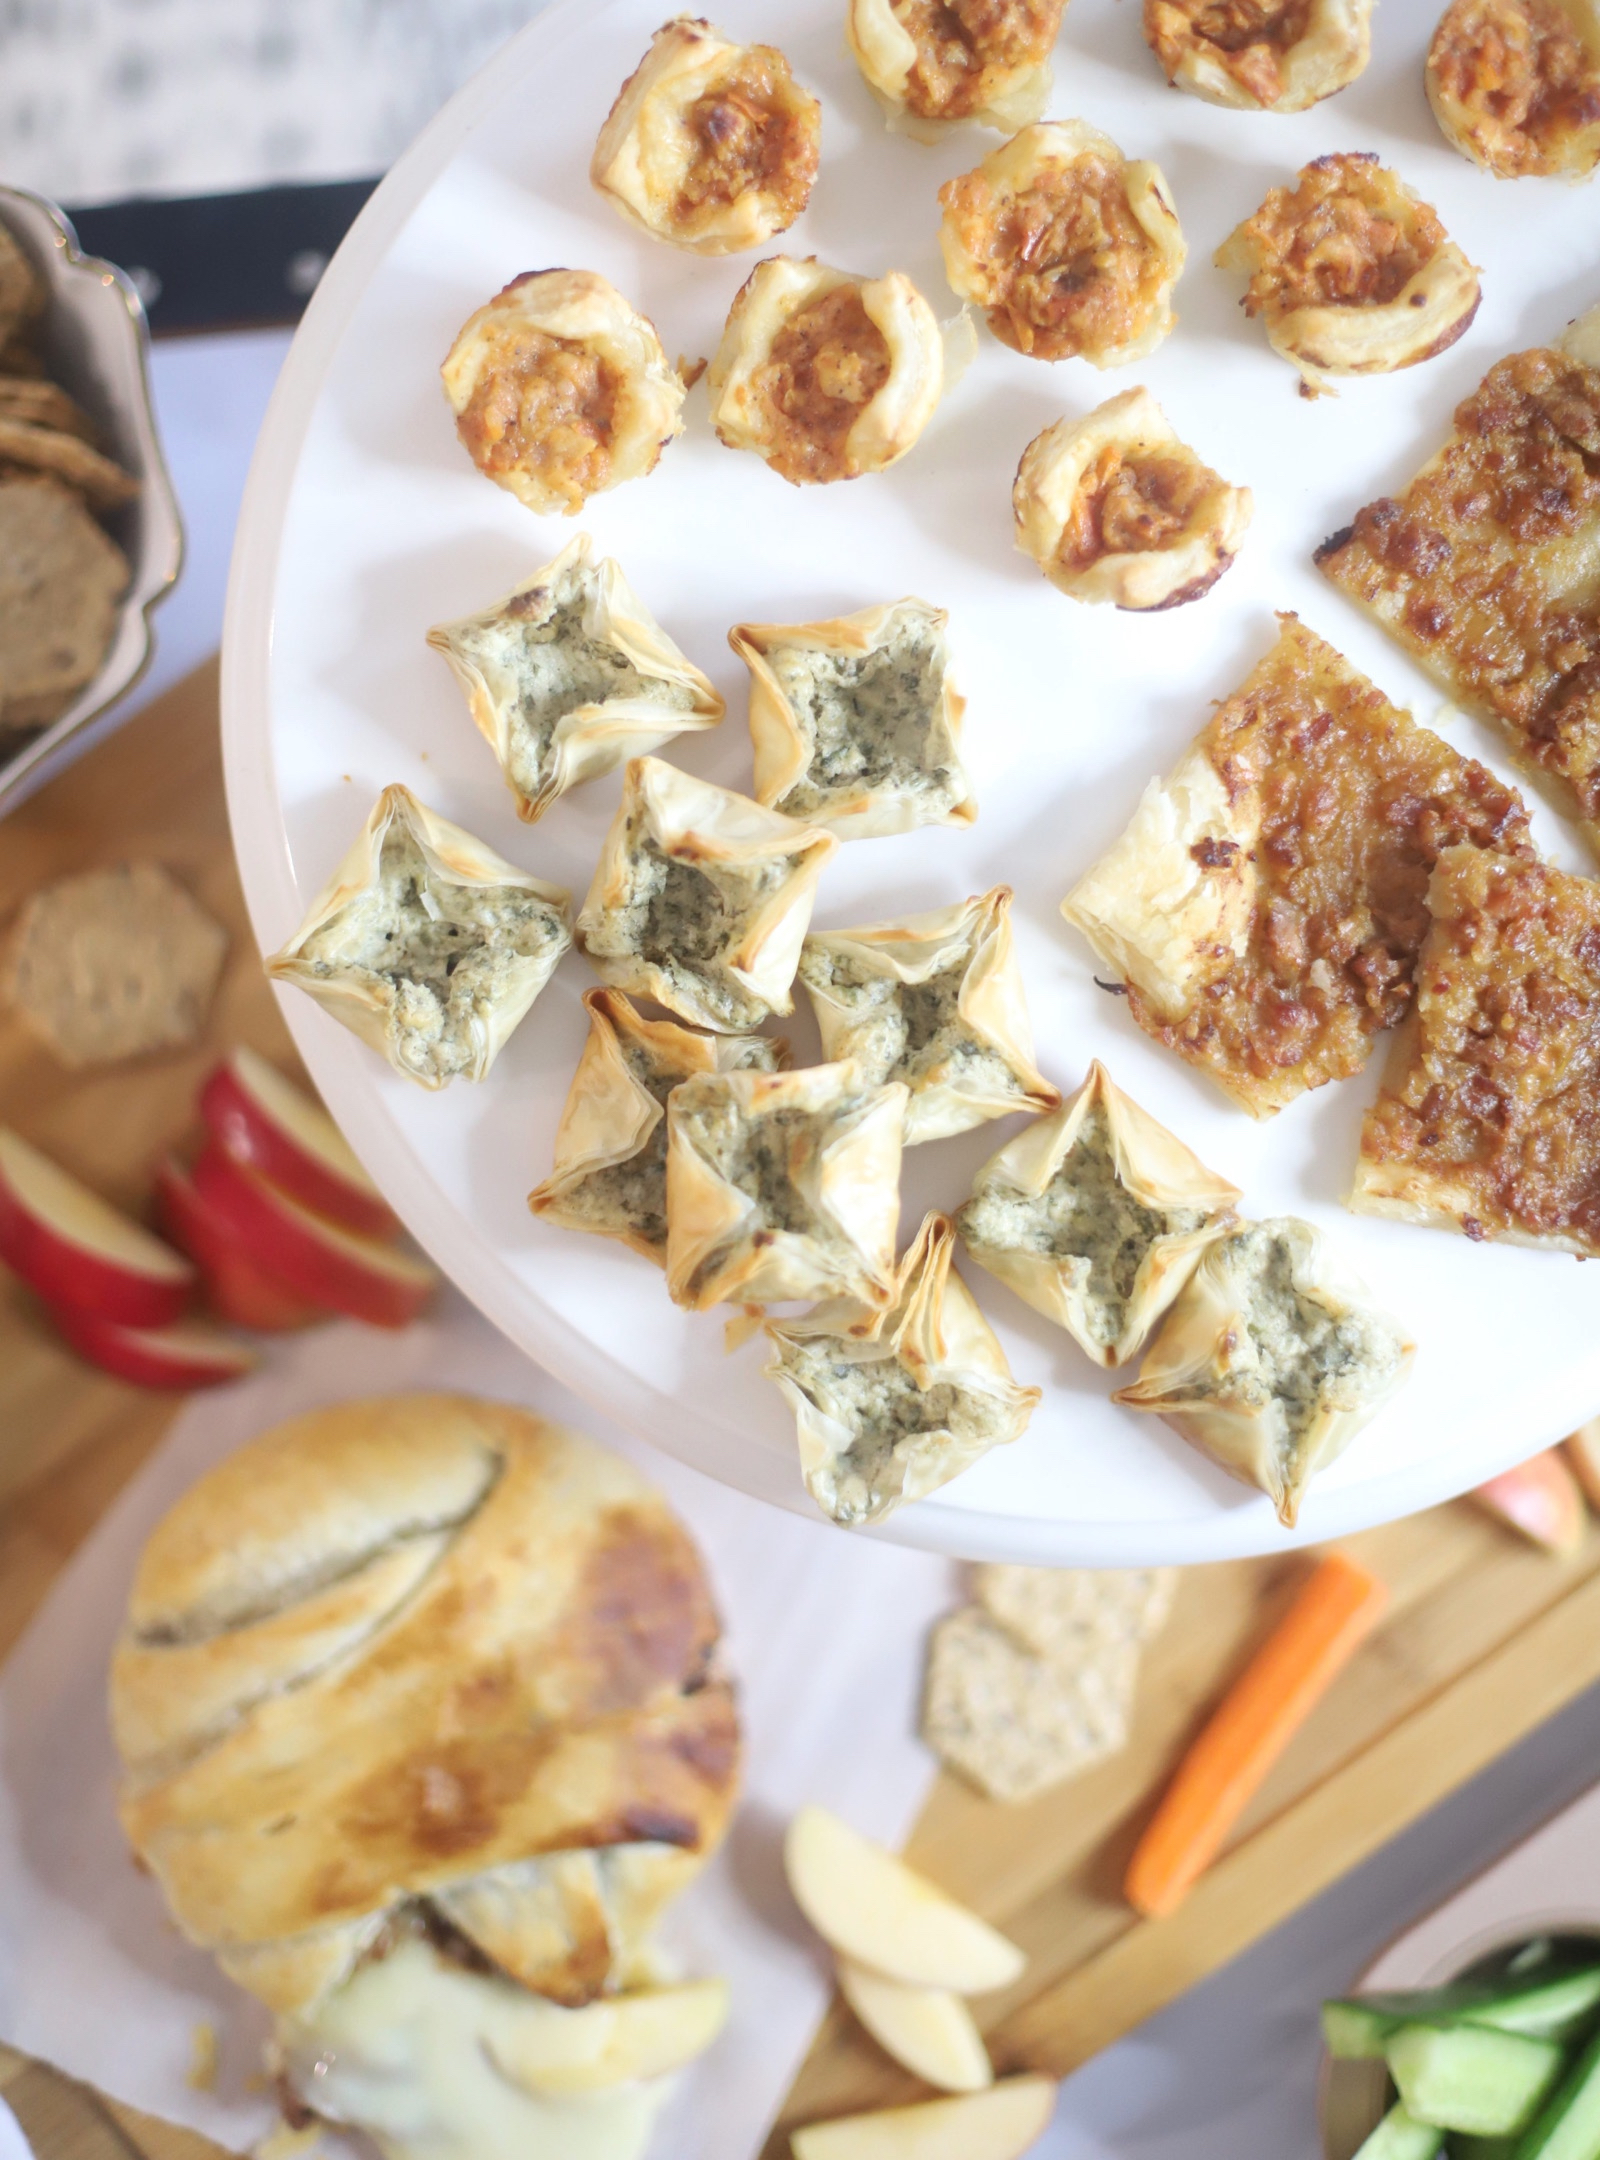 Looking to shake up family meal time? Try appetizers for dinner! This simple, out-of-the box meal idea is sure to get kids and grownups alike excited for dinner. | @glitterinclexi | GLITTERINC.COM